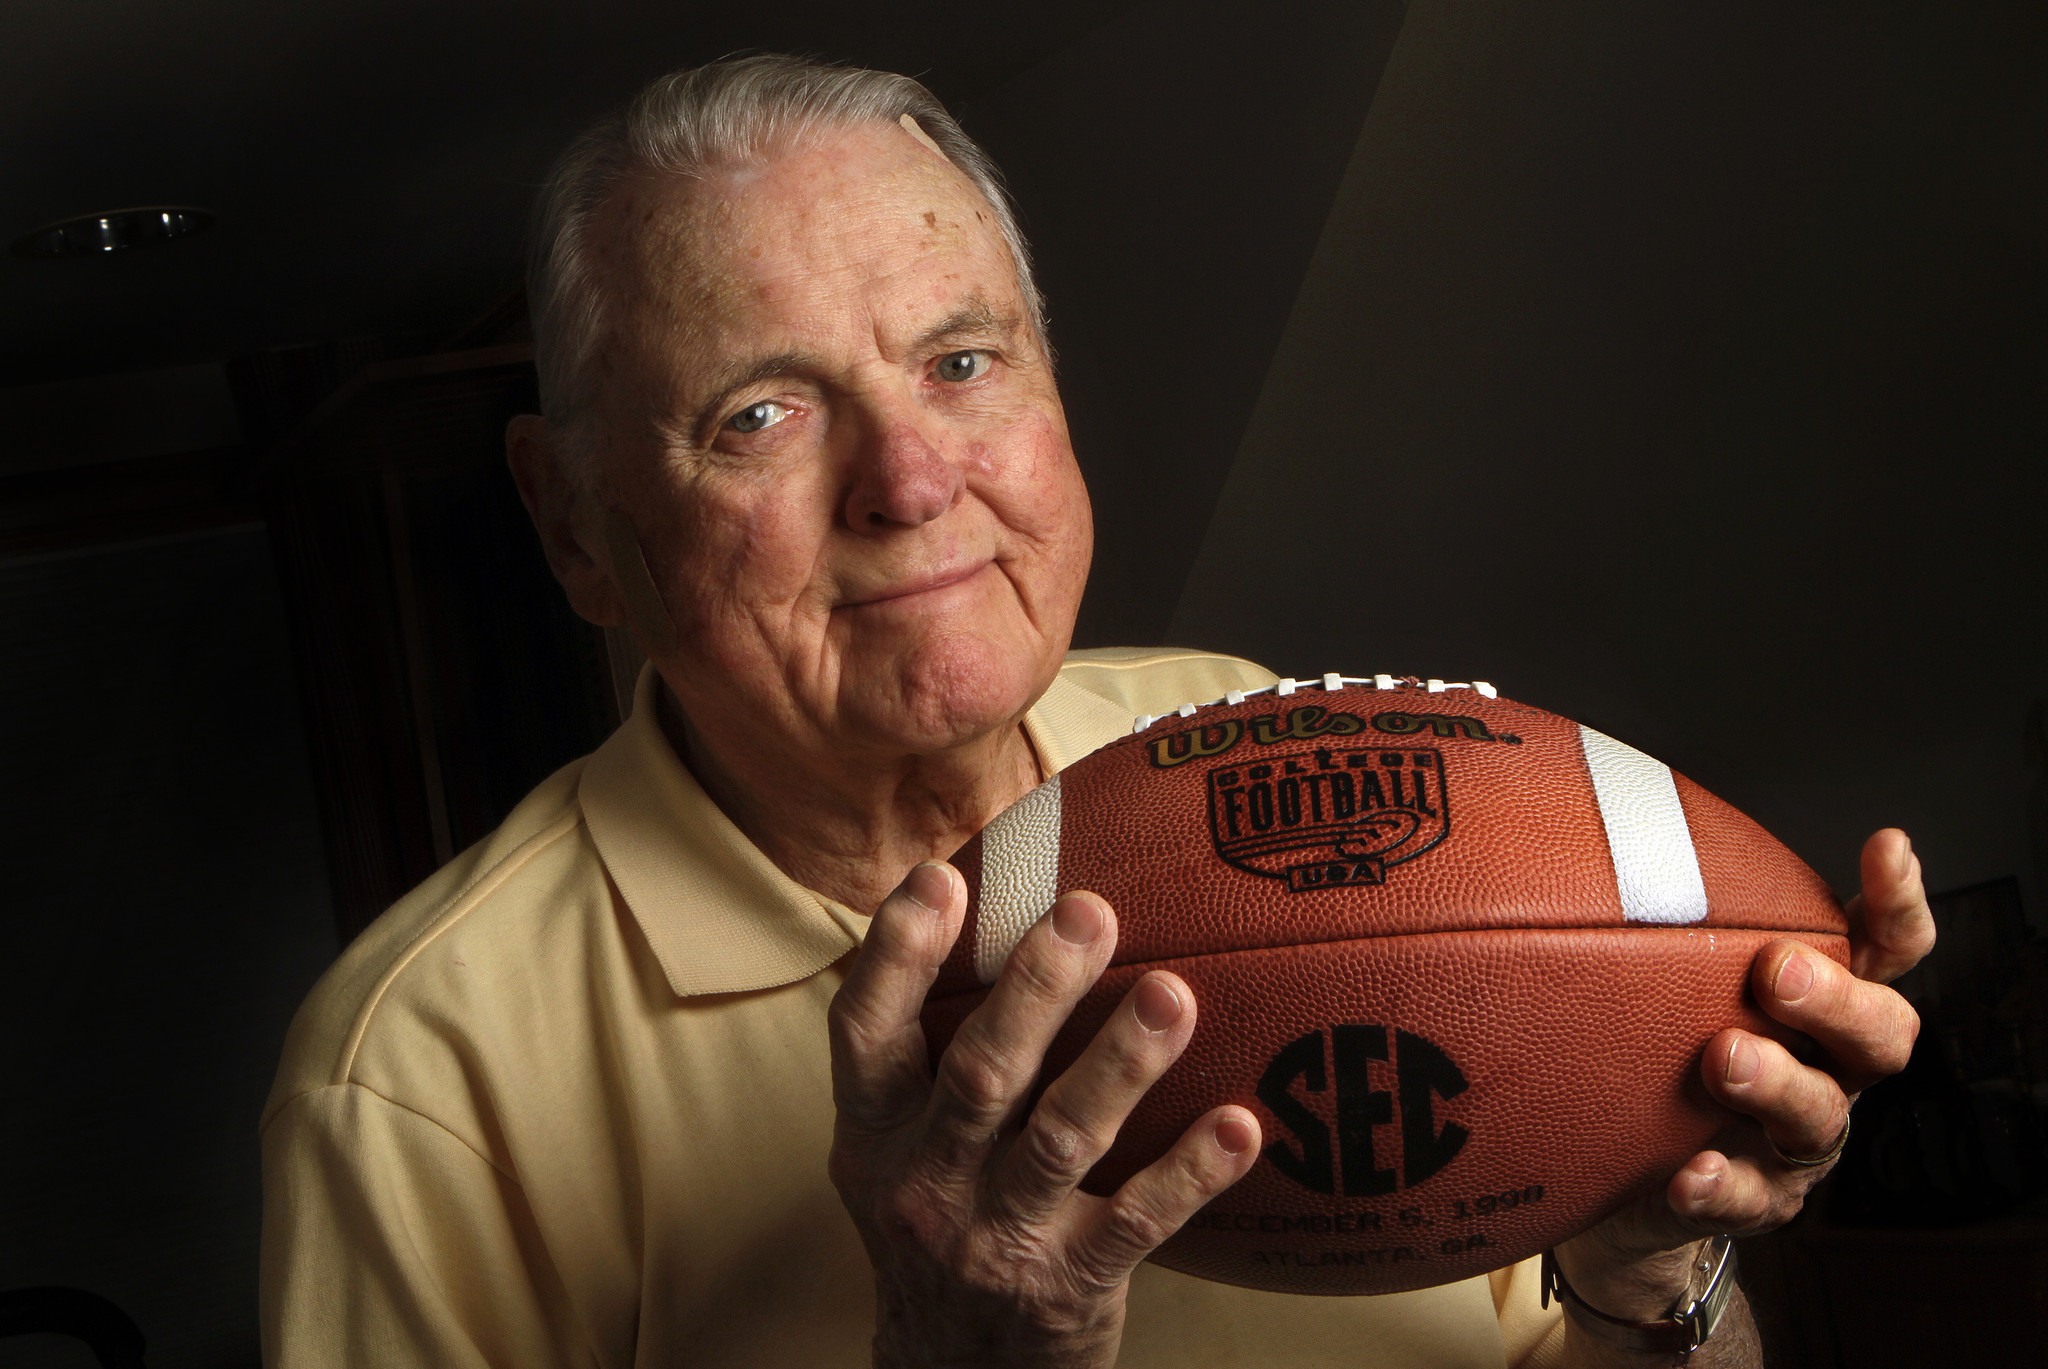 ESPN to honor legendary broadcaster Keith Jackson with marathon of famous games